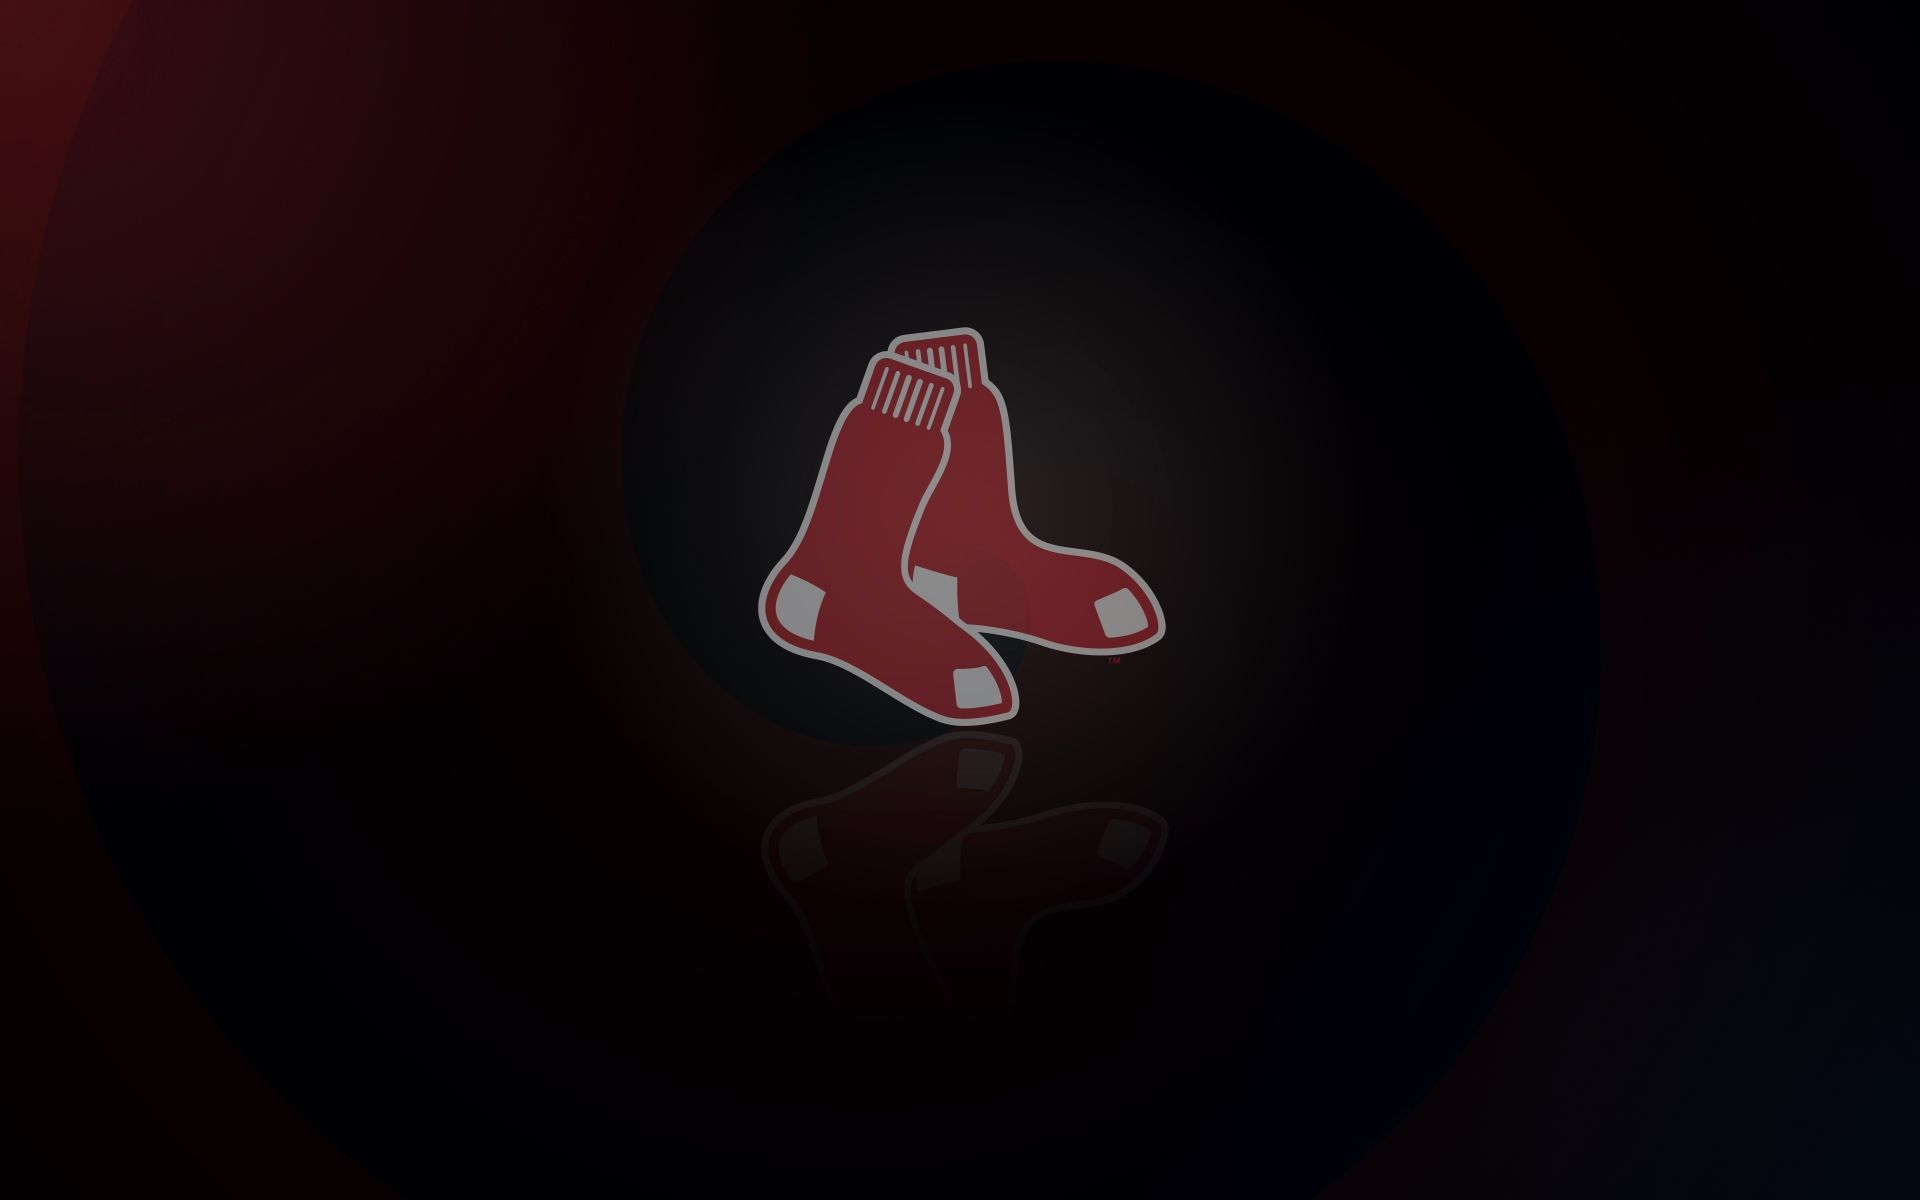 1920x1200 - Boston Red Sox Wallpaper Screensavers 47